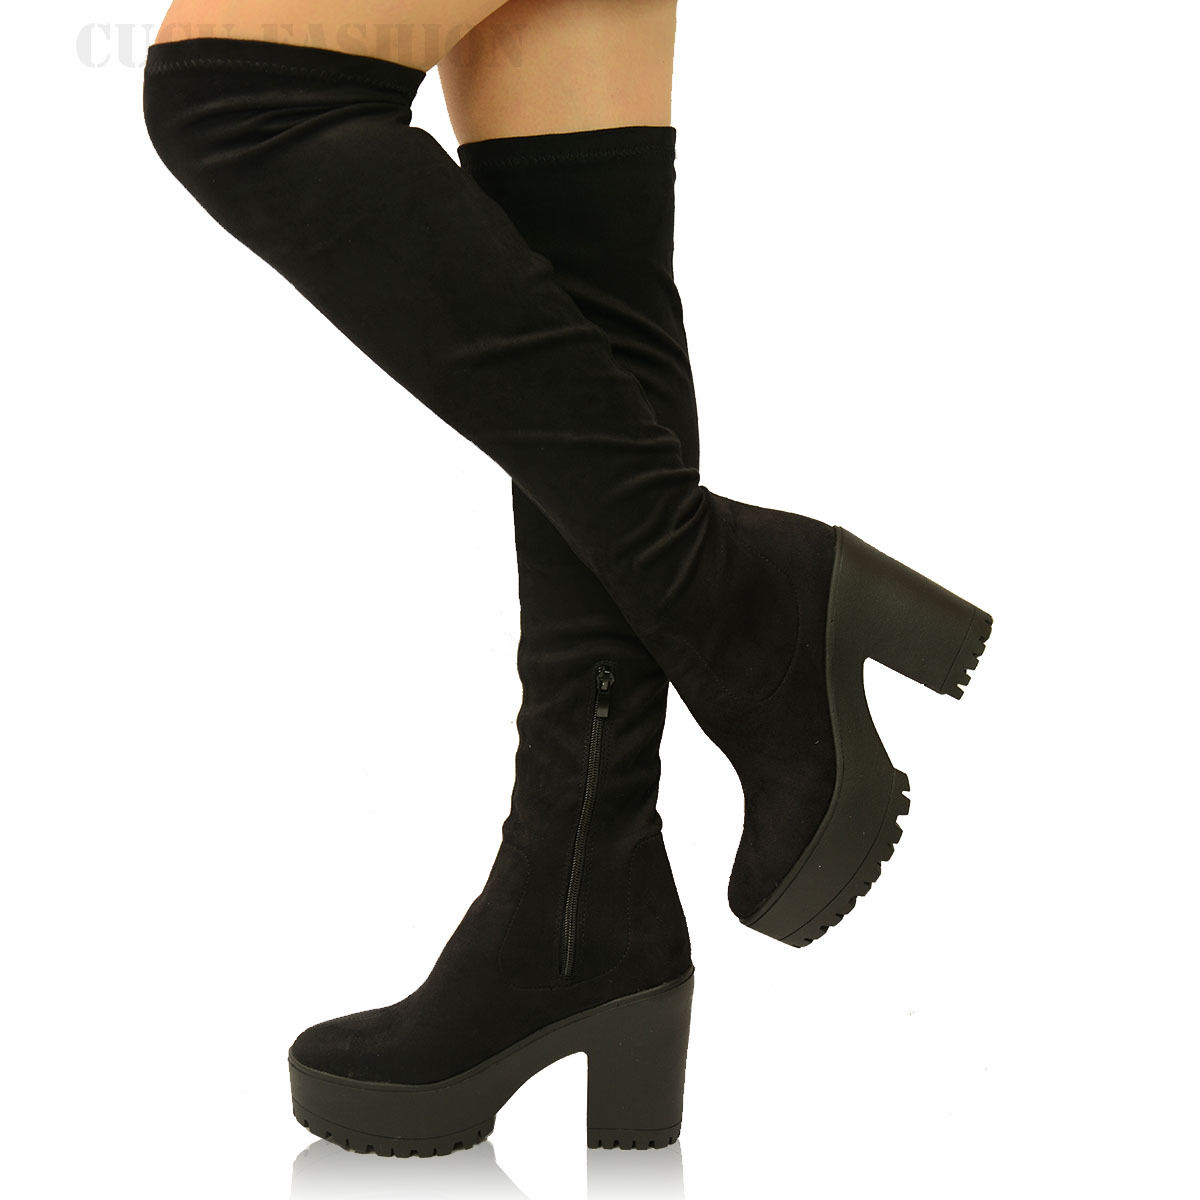 Womens Stretch Over the Knee Boots Ladies Block Chunky High Heel Platforms Size